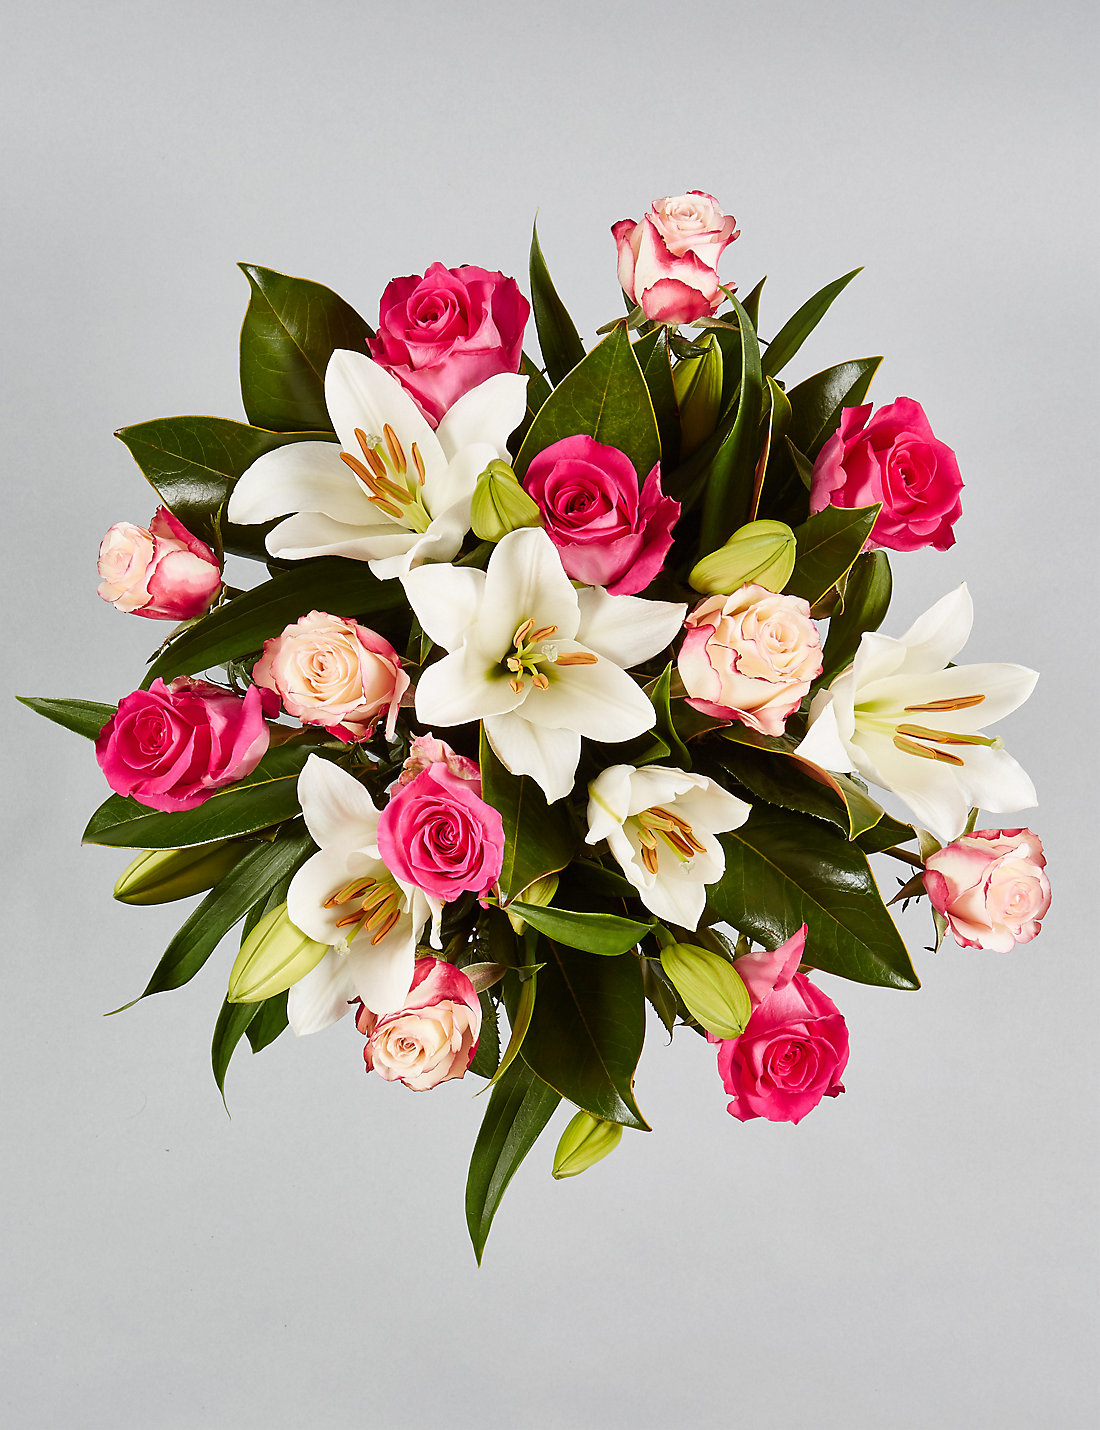 Marks and spencer funeral flowers gallery flower wallpaper hd stunning white lilies flowers contemporary wedding and flowers lilies white lilies flowers lily bouquets plants ms izmirmasajfo